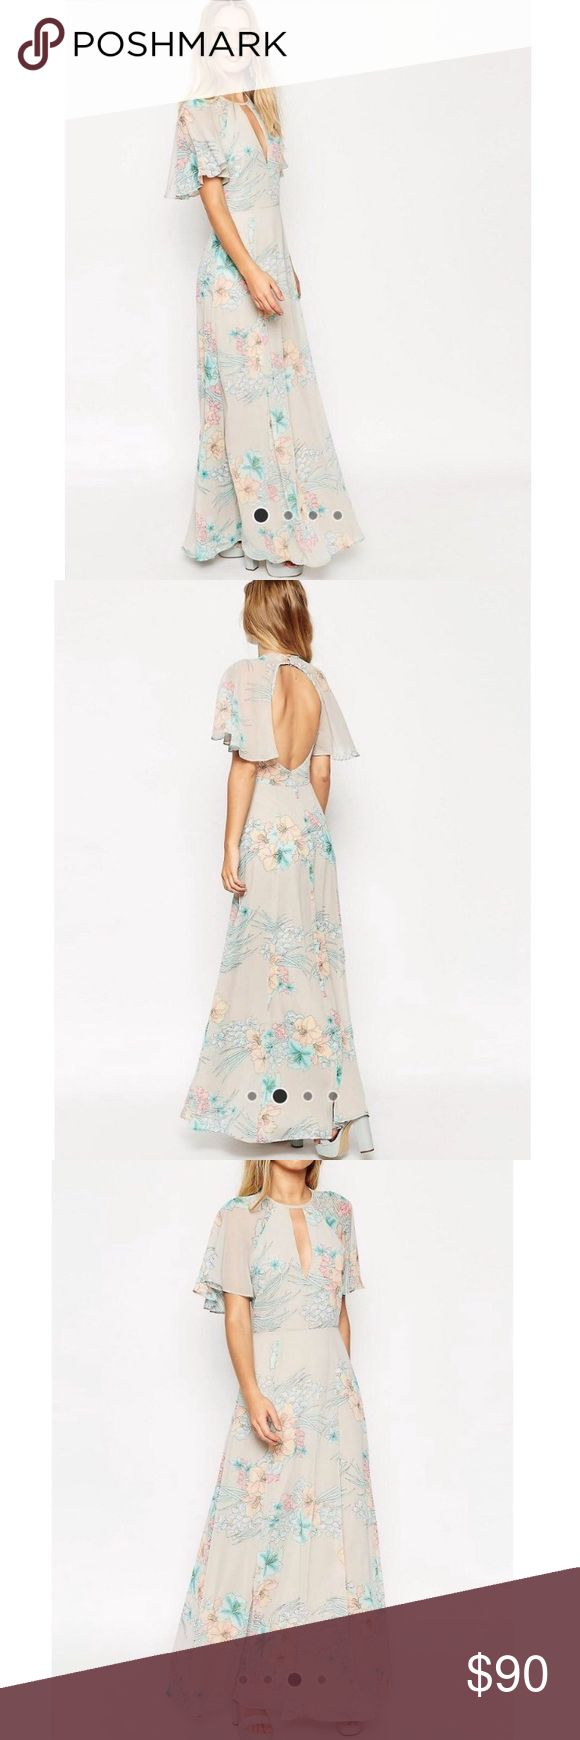 ASOS 70s Faded Floral Flutter Sleeve Maxi Dress Gorgeous flutter sleeve maxi dress with faded 70s floral pattern! Perfect for a summer wedding or evening out! Brand new with tags! Re-posh :) I bought for a wedding and ended up wearing something else. Dress is 😍😍👌🏻✔️ OPEN TO OFFERS ✔️ ASOS Dresses Maxi